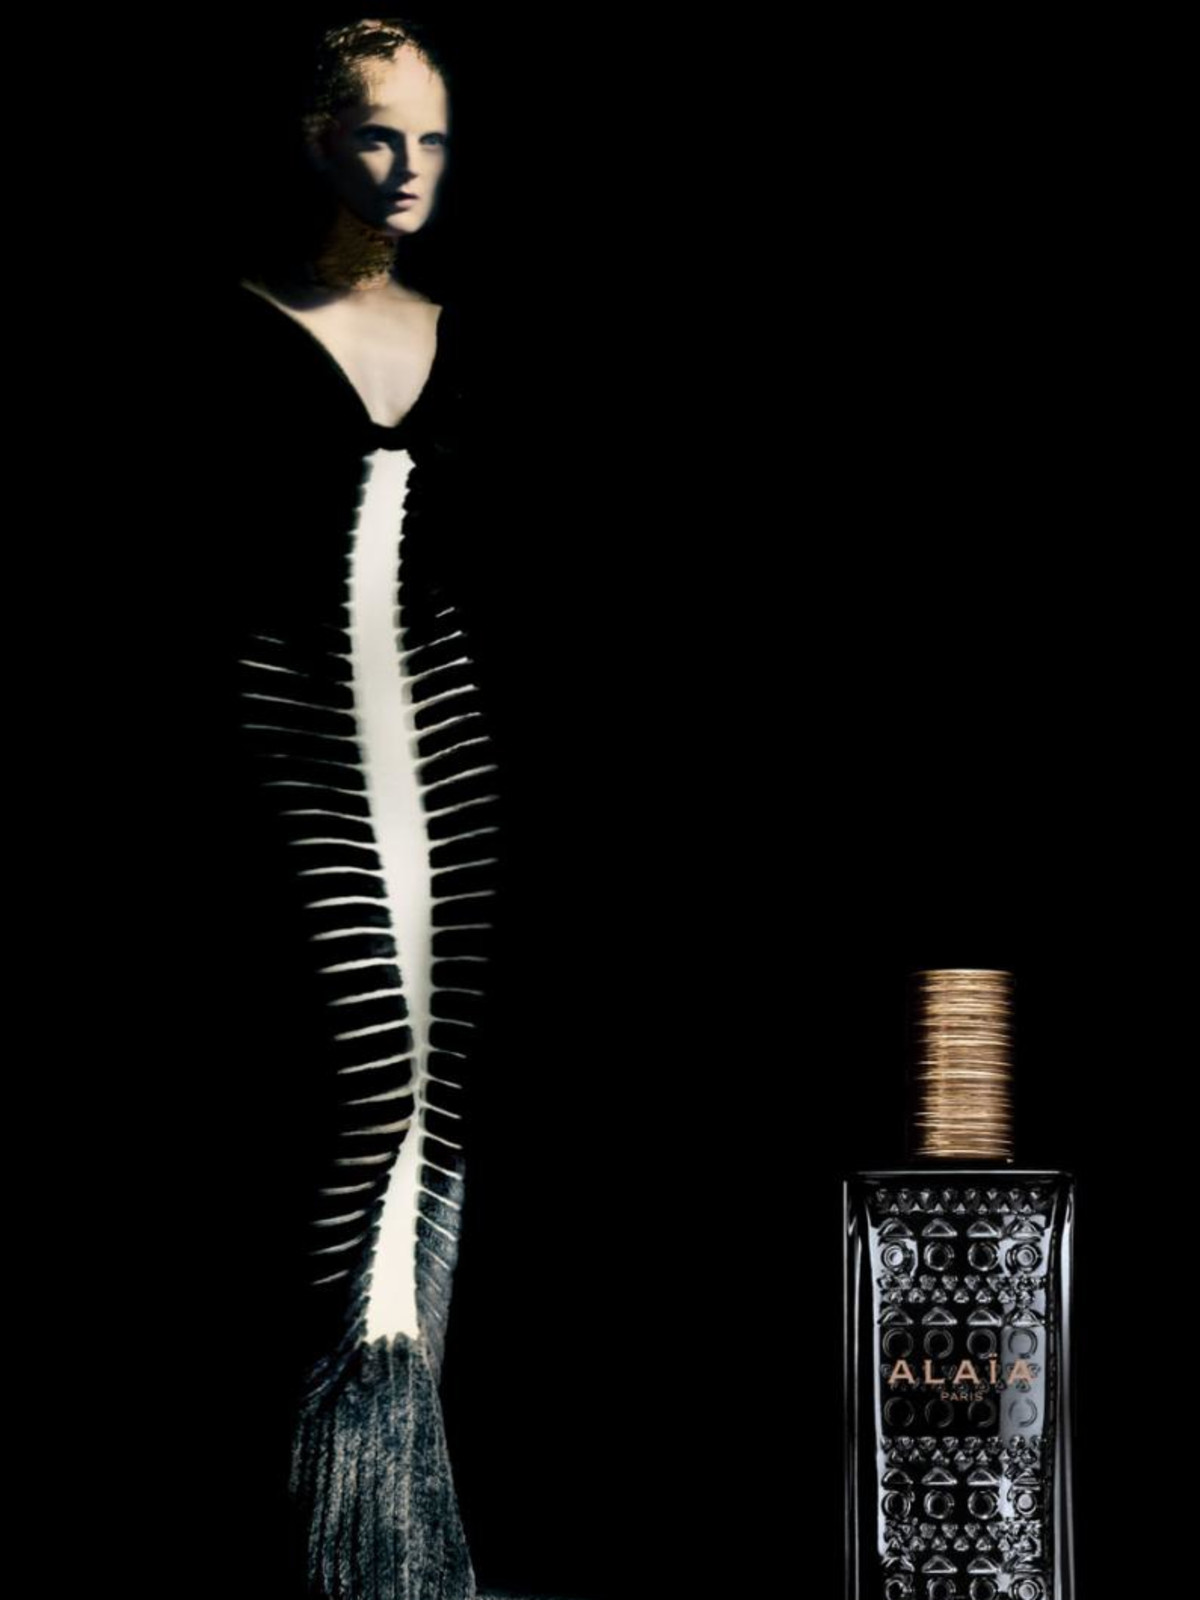 Alaia fragrance at Saks Fifth Avenue ad campaign